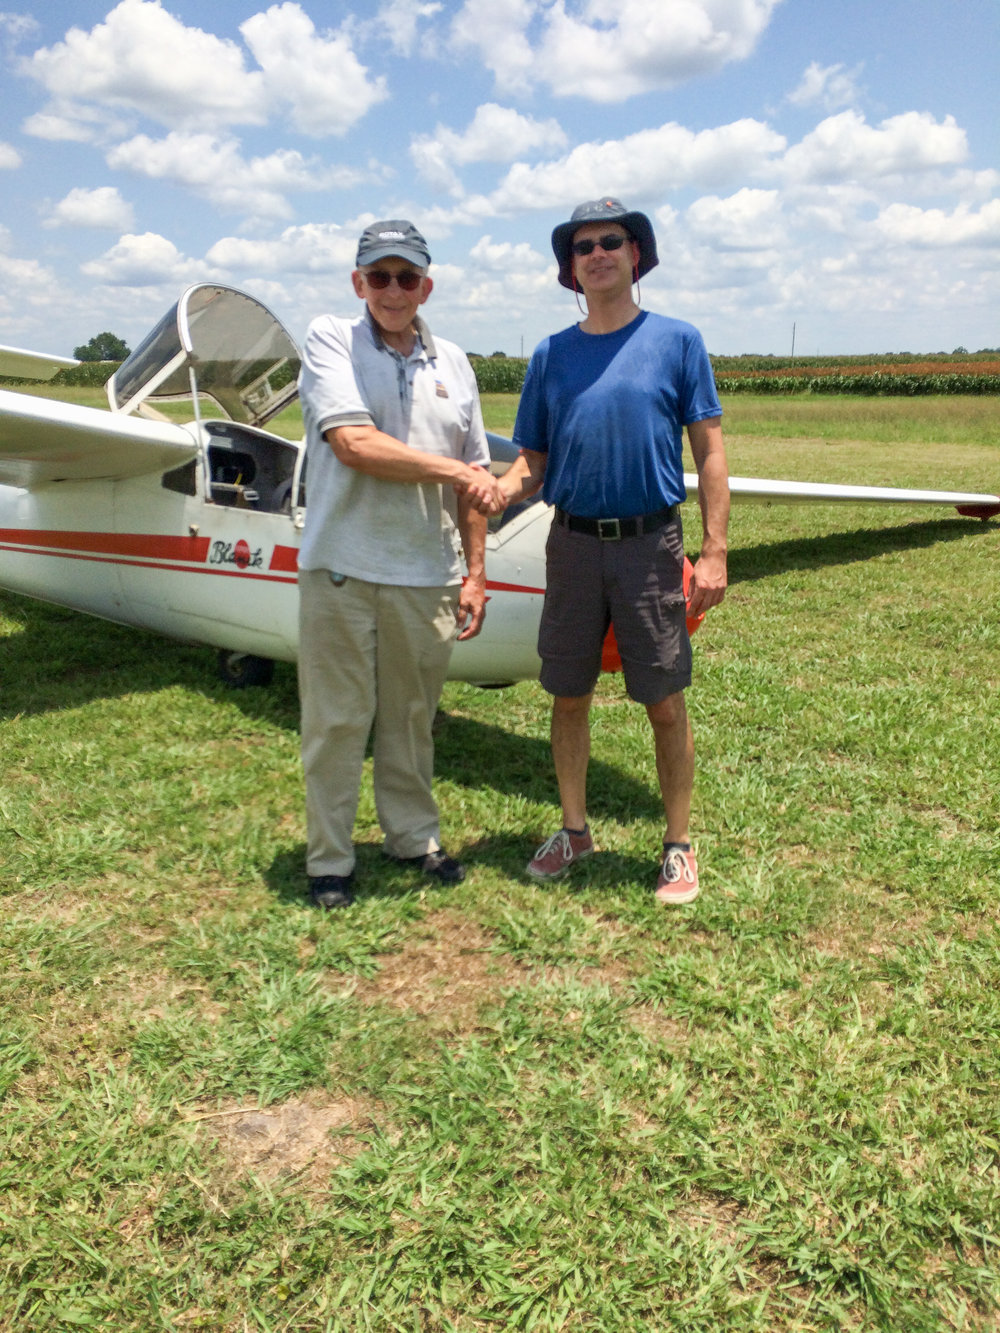 DPE, Gregg Squires (L), and Jason Bridger (R) after Jason's successful check ride.